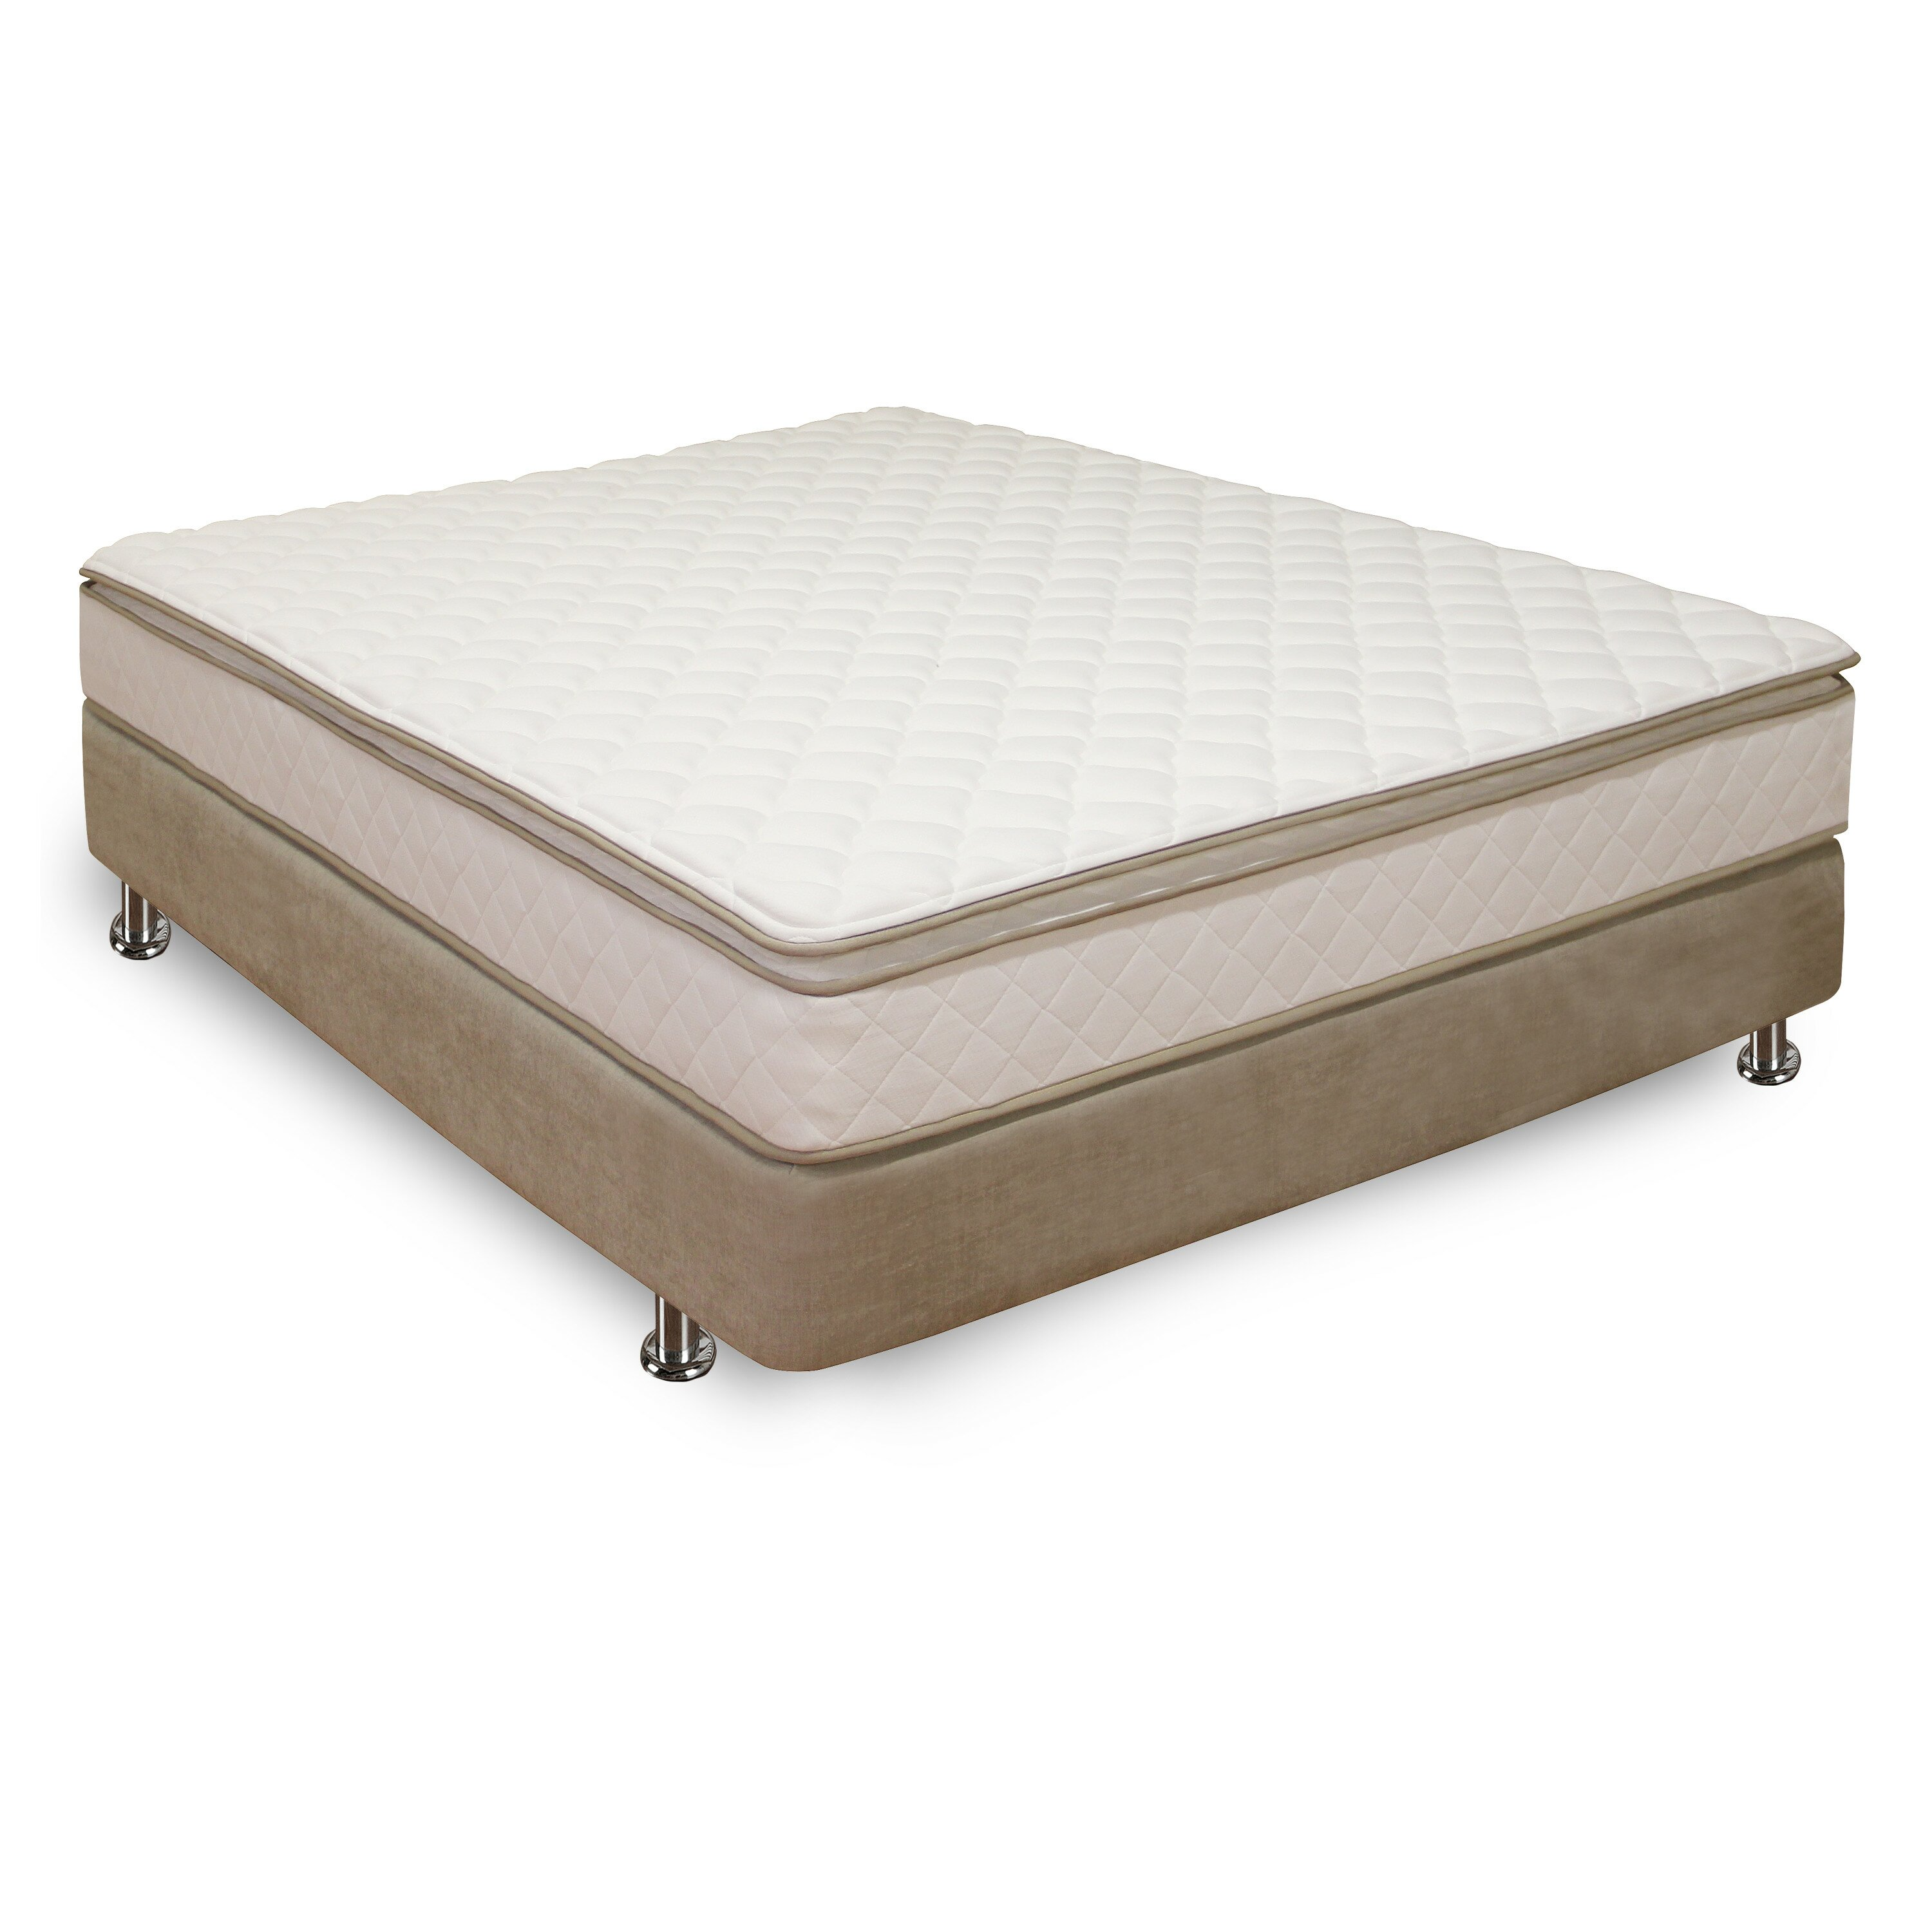 "Classic Brands Pillowtop Innerspring 10"" Firm Mattress"